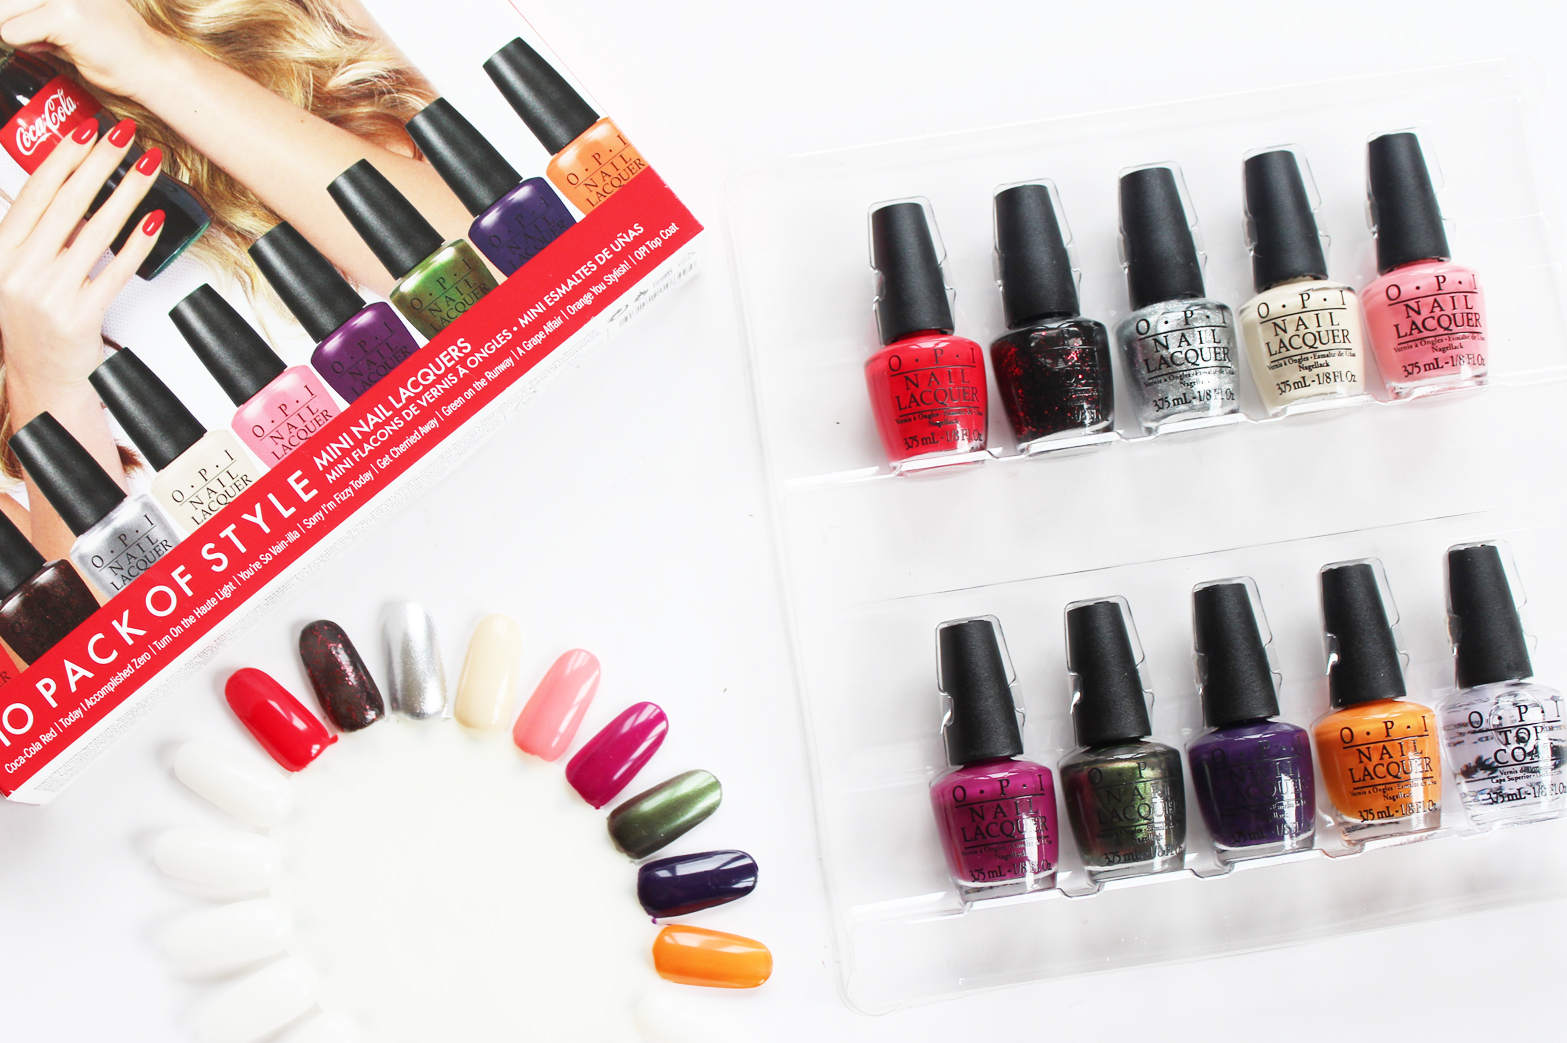 OPI | 10 Pack of Style - Coca Cola Mini Nail Polishes - Swatches + Review - CassandraMyee